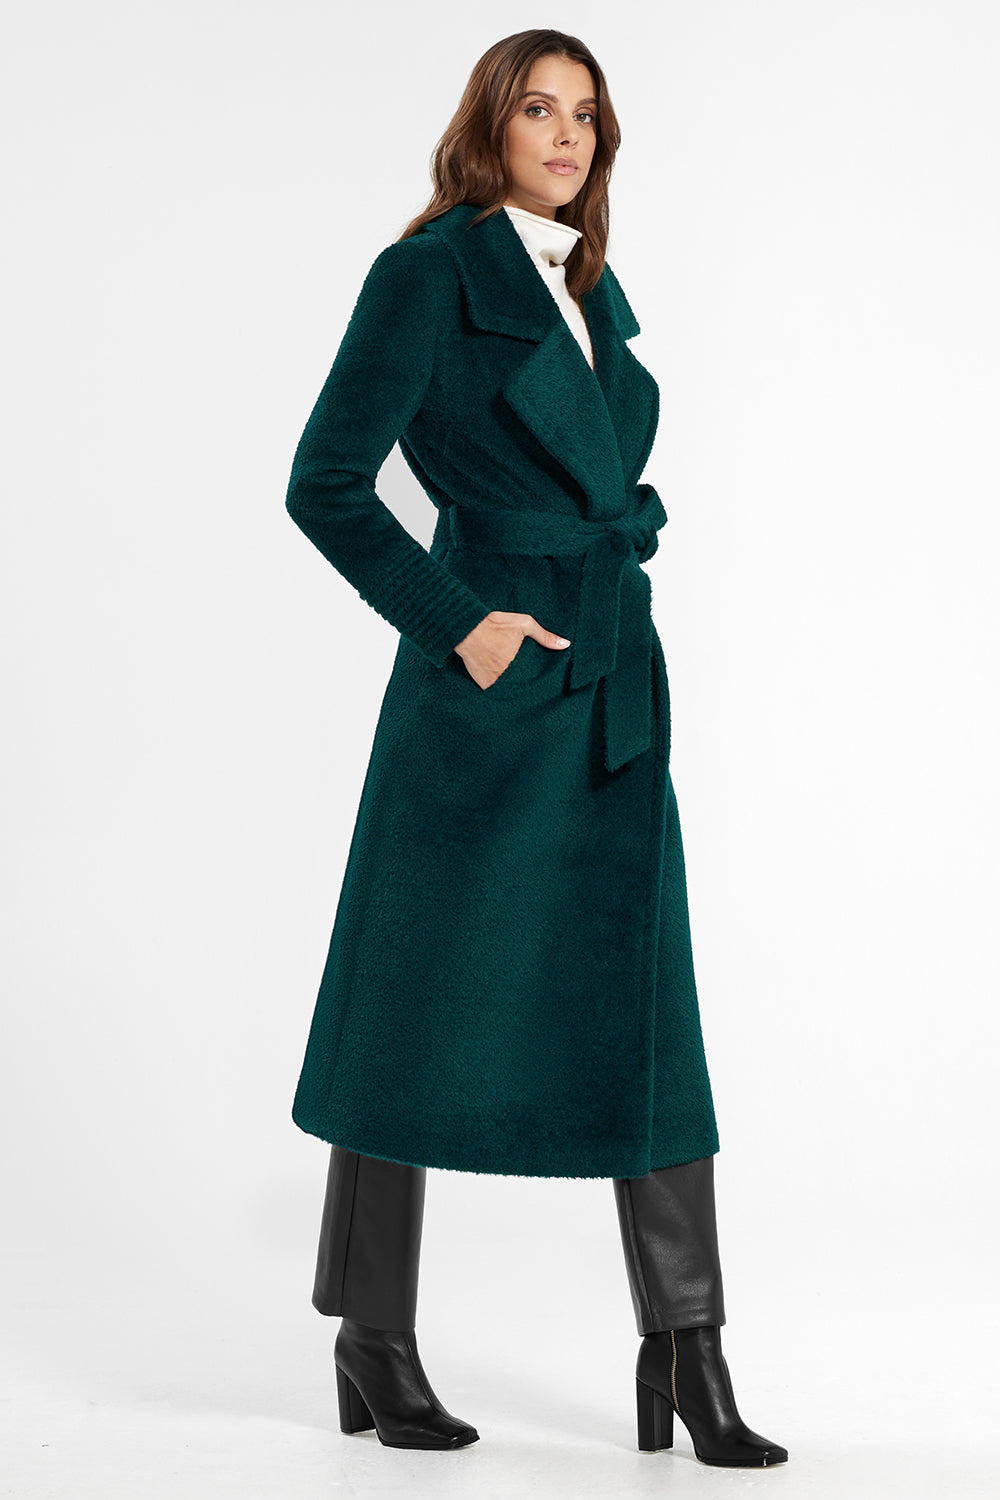 Sentaler Bouclé Alpaca Long Notched Collar Wrap Coat featured in Bouclé Alpaca and available in Emerald Green. Seen from side.